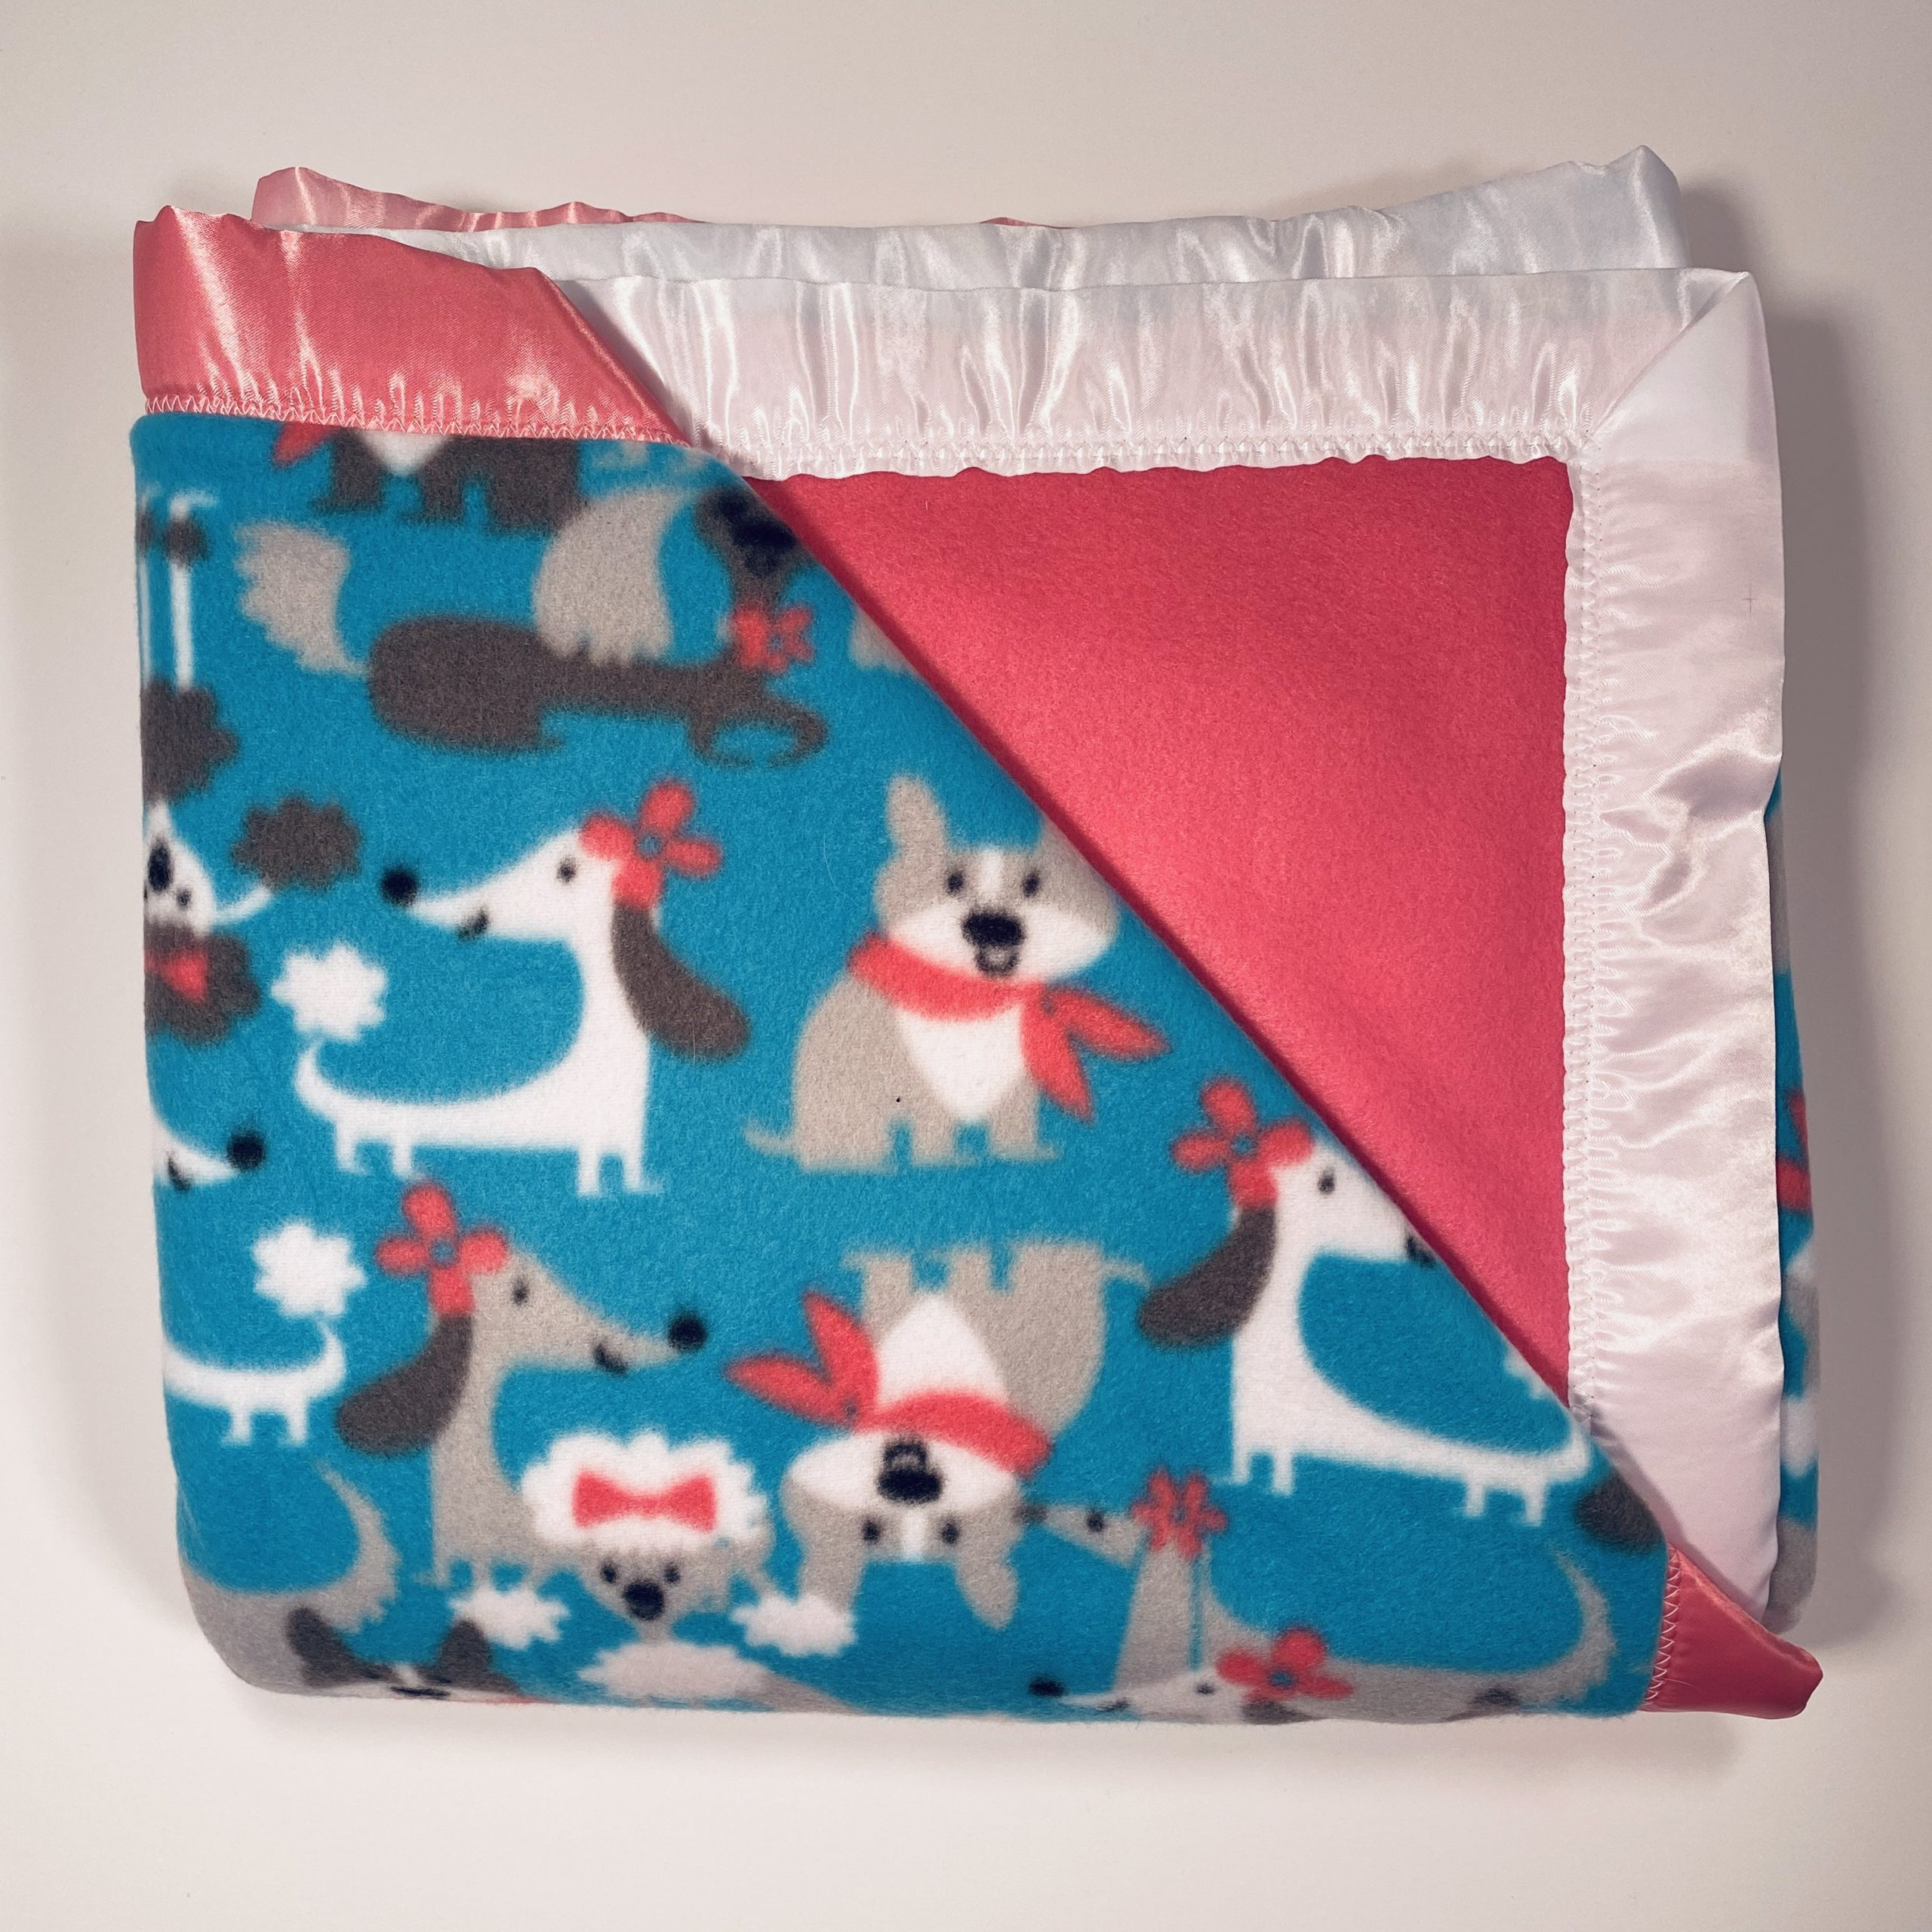 BLKT-FL-DOGS-BLUE-SOLID-PINK-PINK